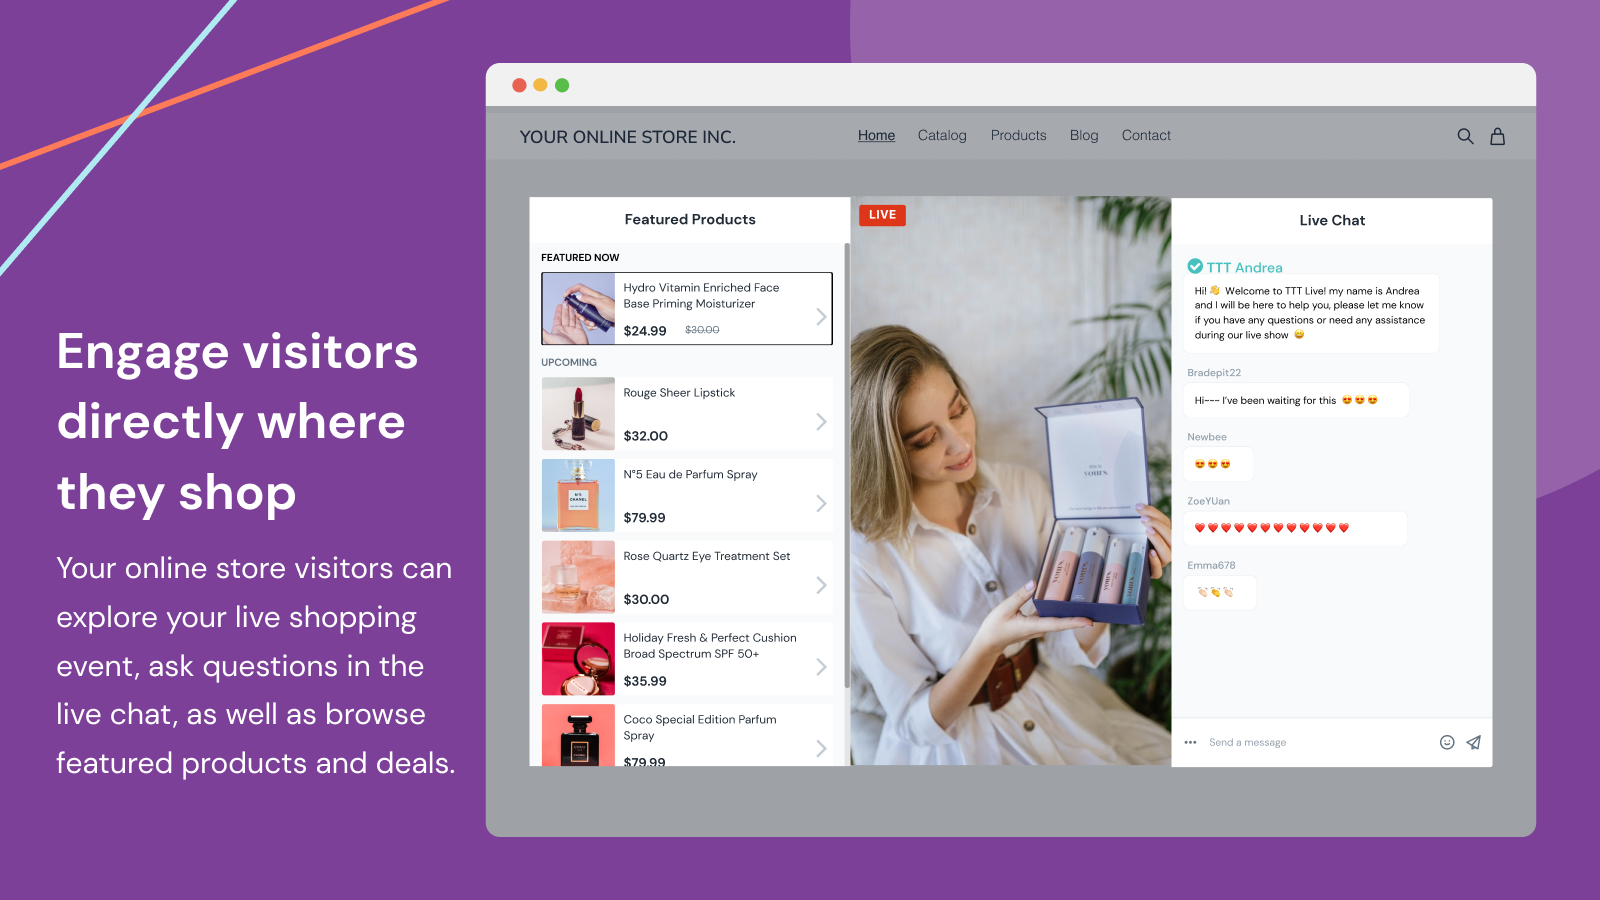 Engage with visitors directly where they shop